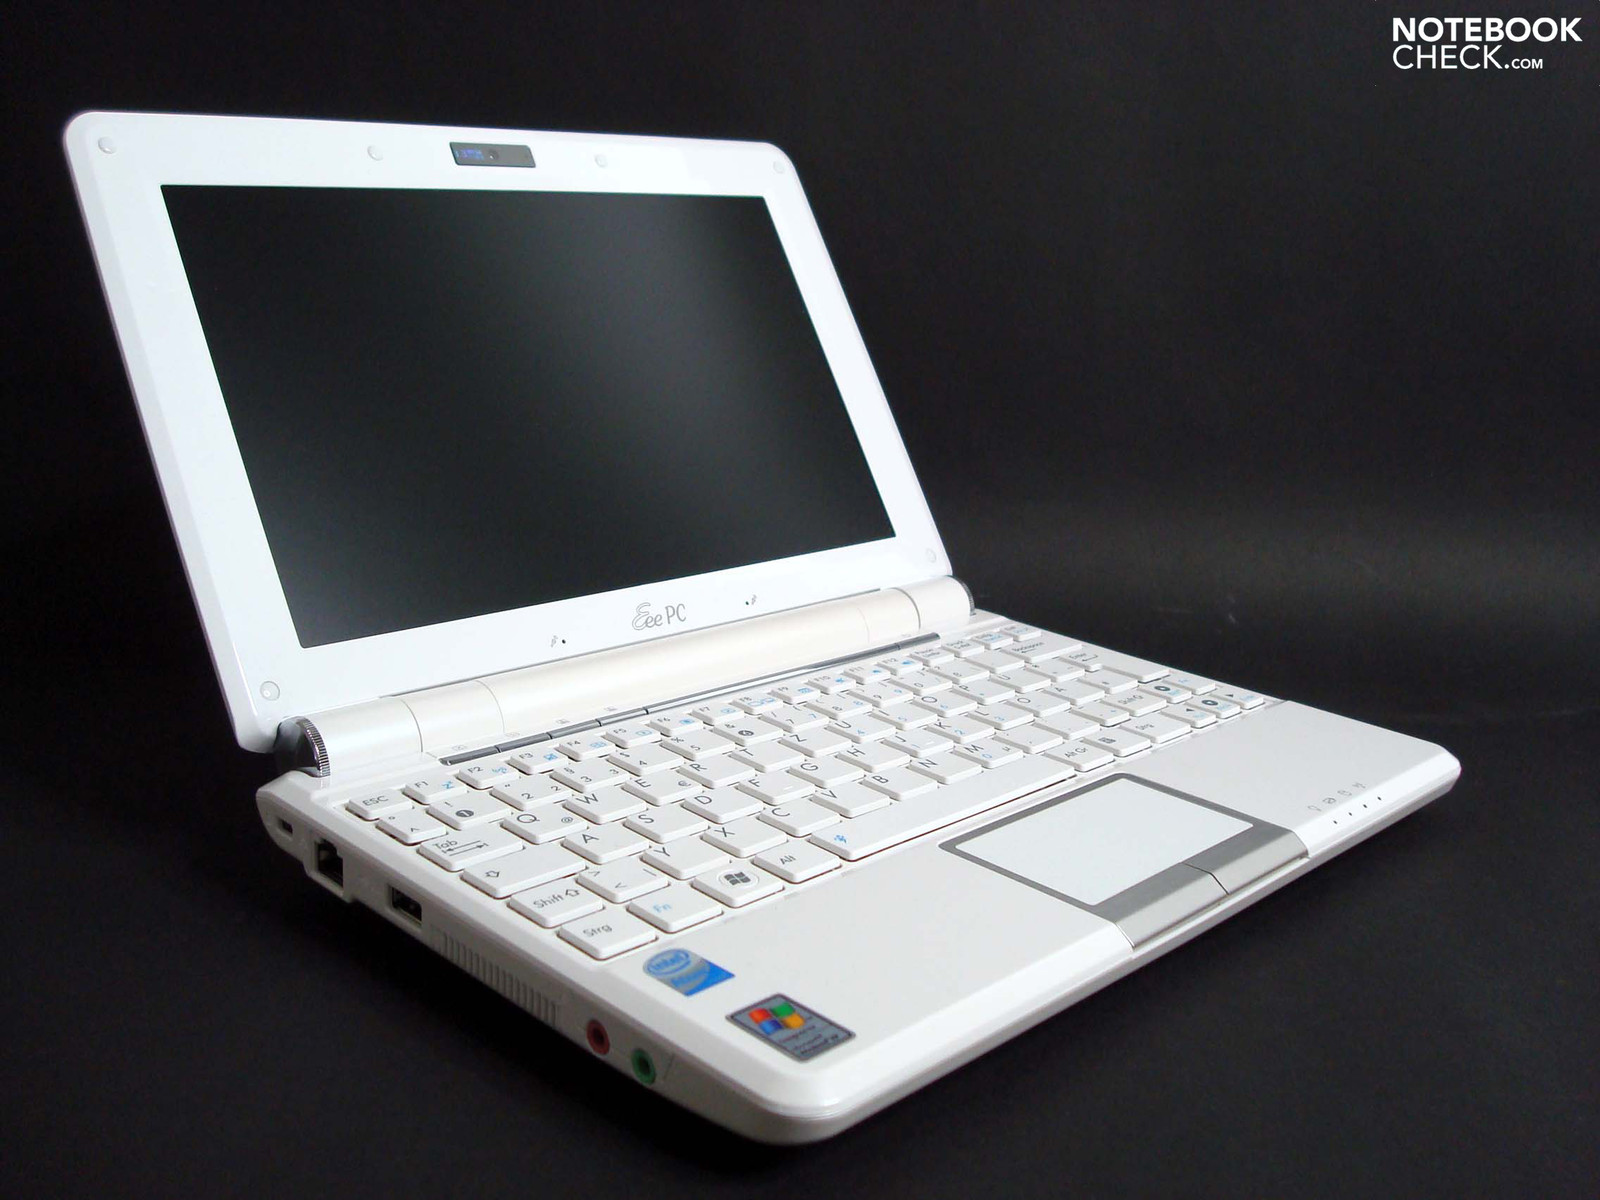 ASUS EEE PC 1000HE DRIVER WINDOWS